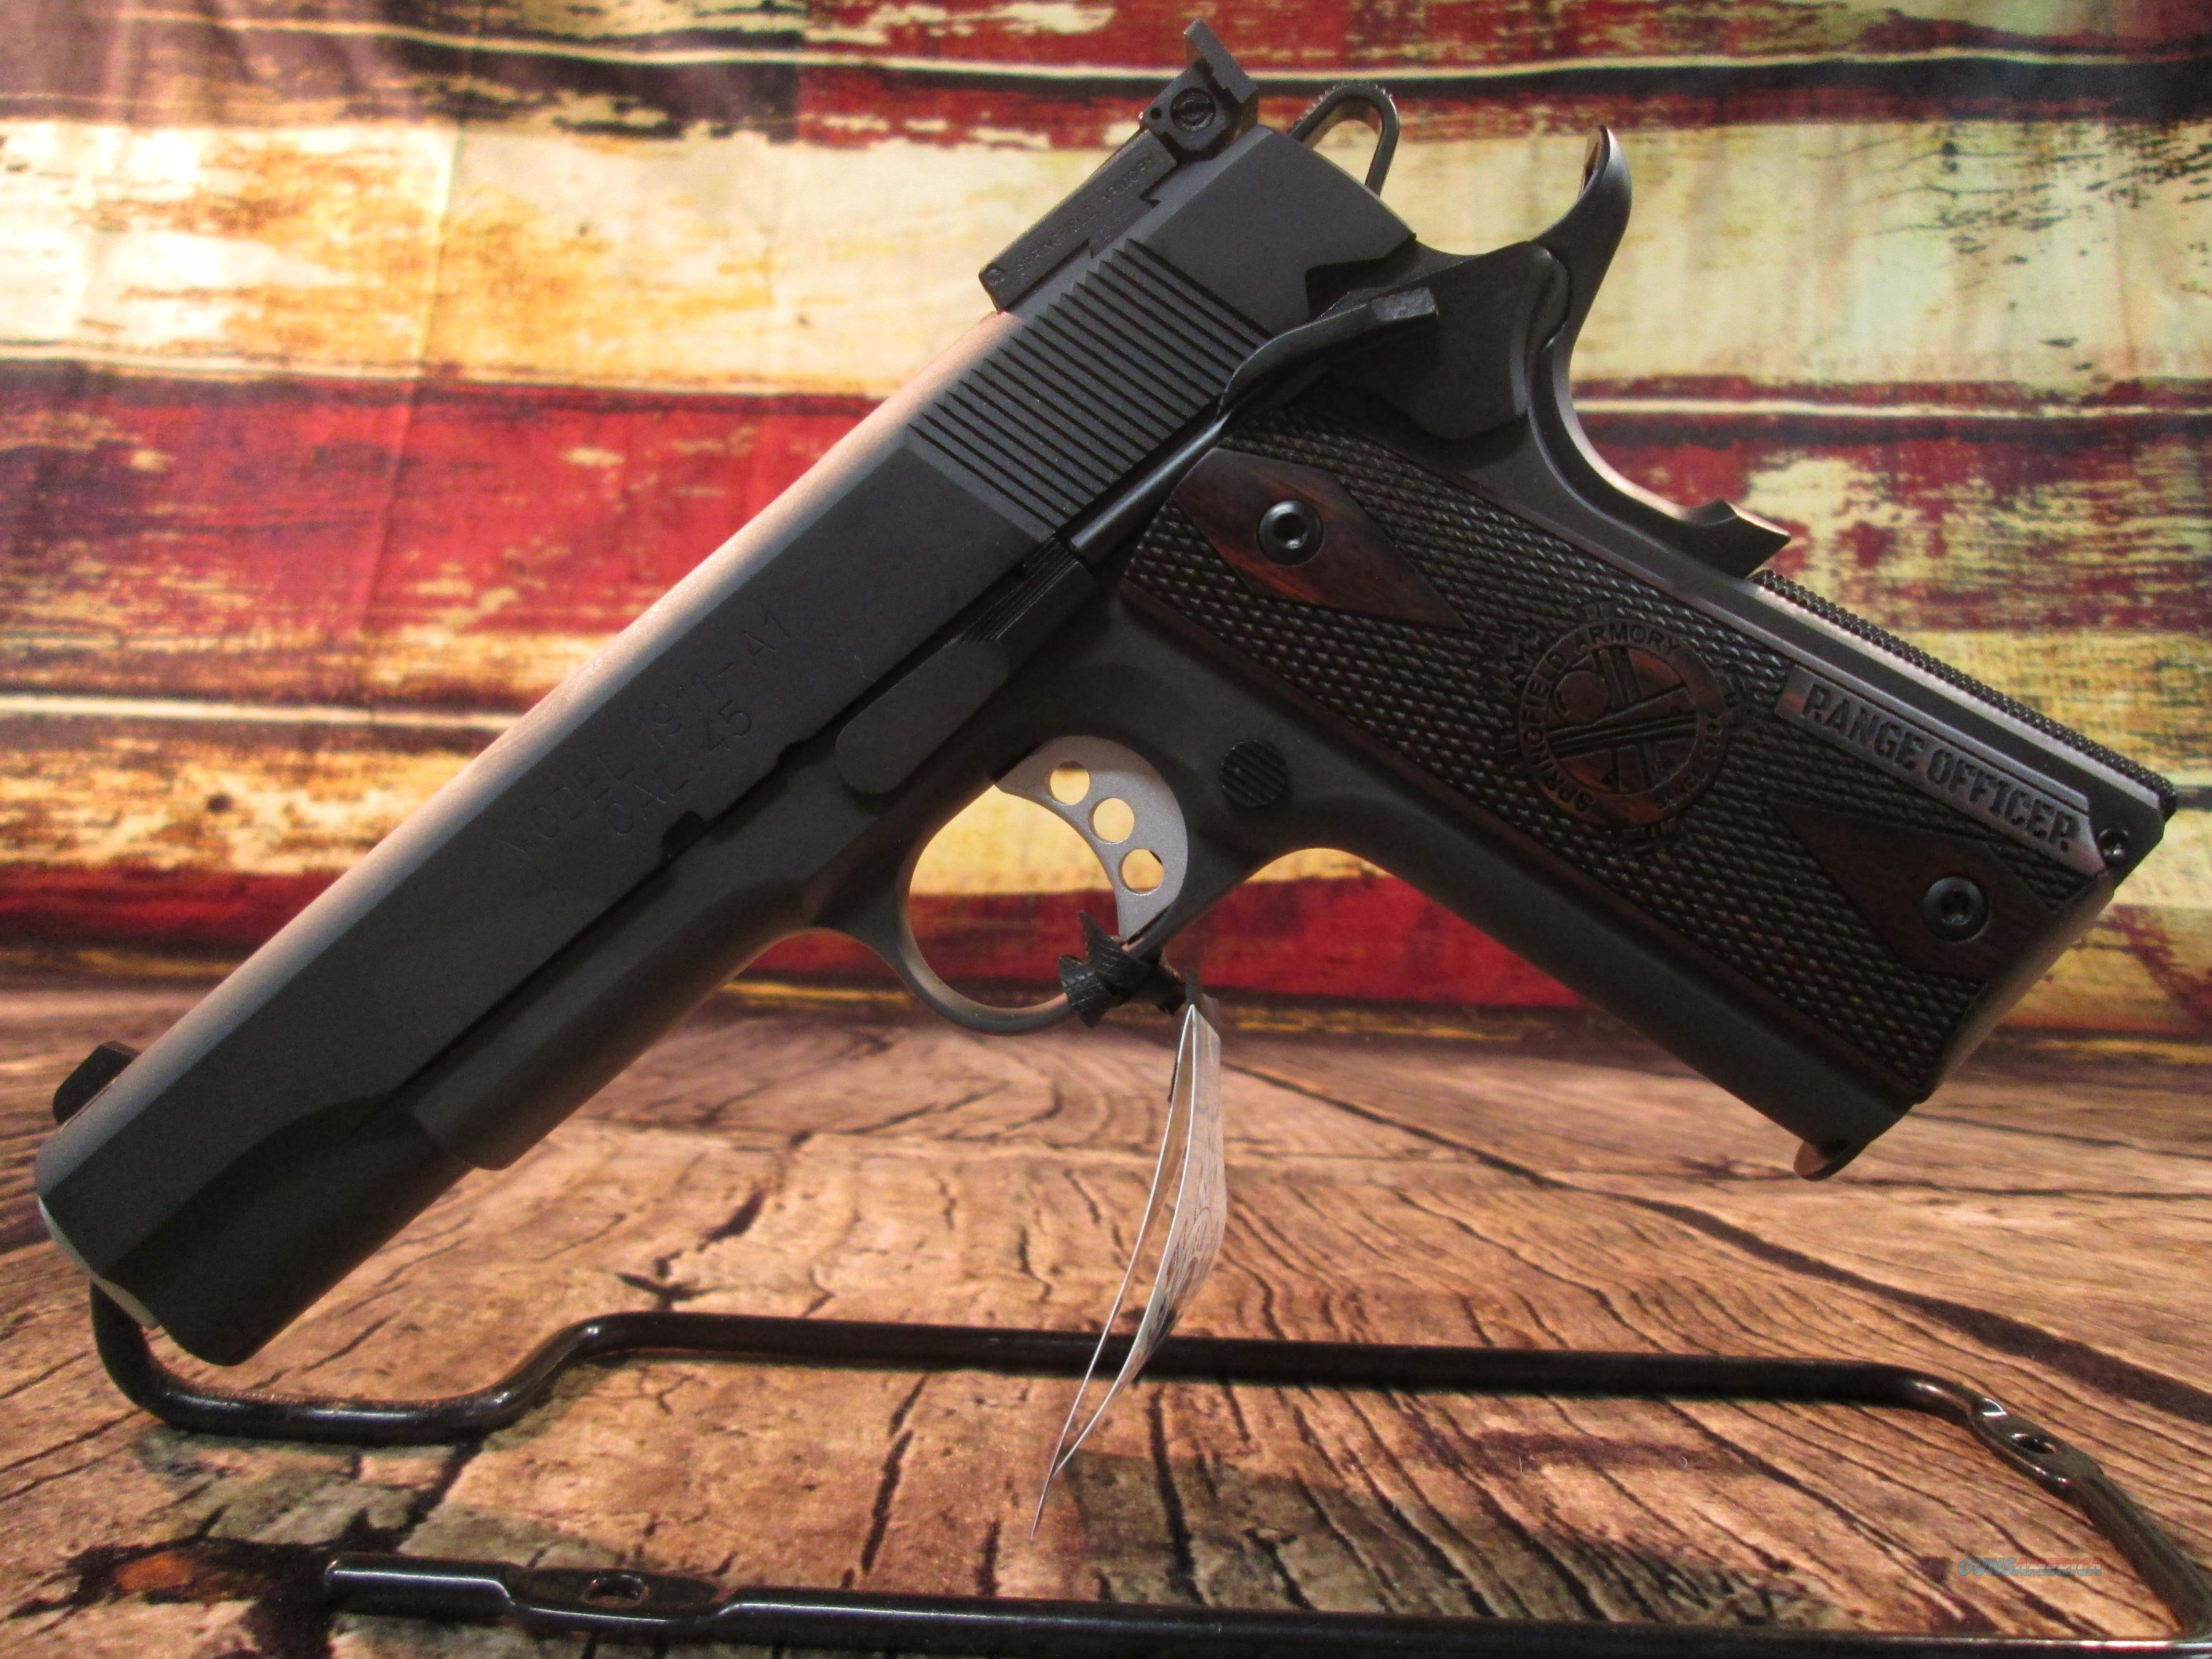 SPRINGFIELD ARMORY RANGE OFFICER PARKERIZED 1911 A1 LOADED (PI9128L) NEW   Guns > Pistols > Springfield Armory Pistols > 1911 Type